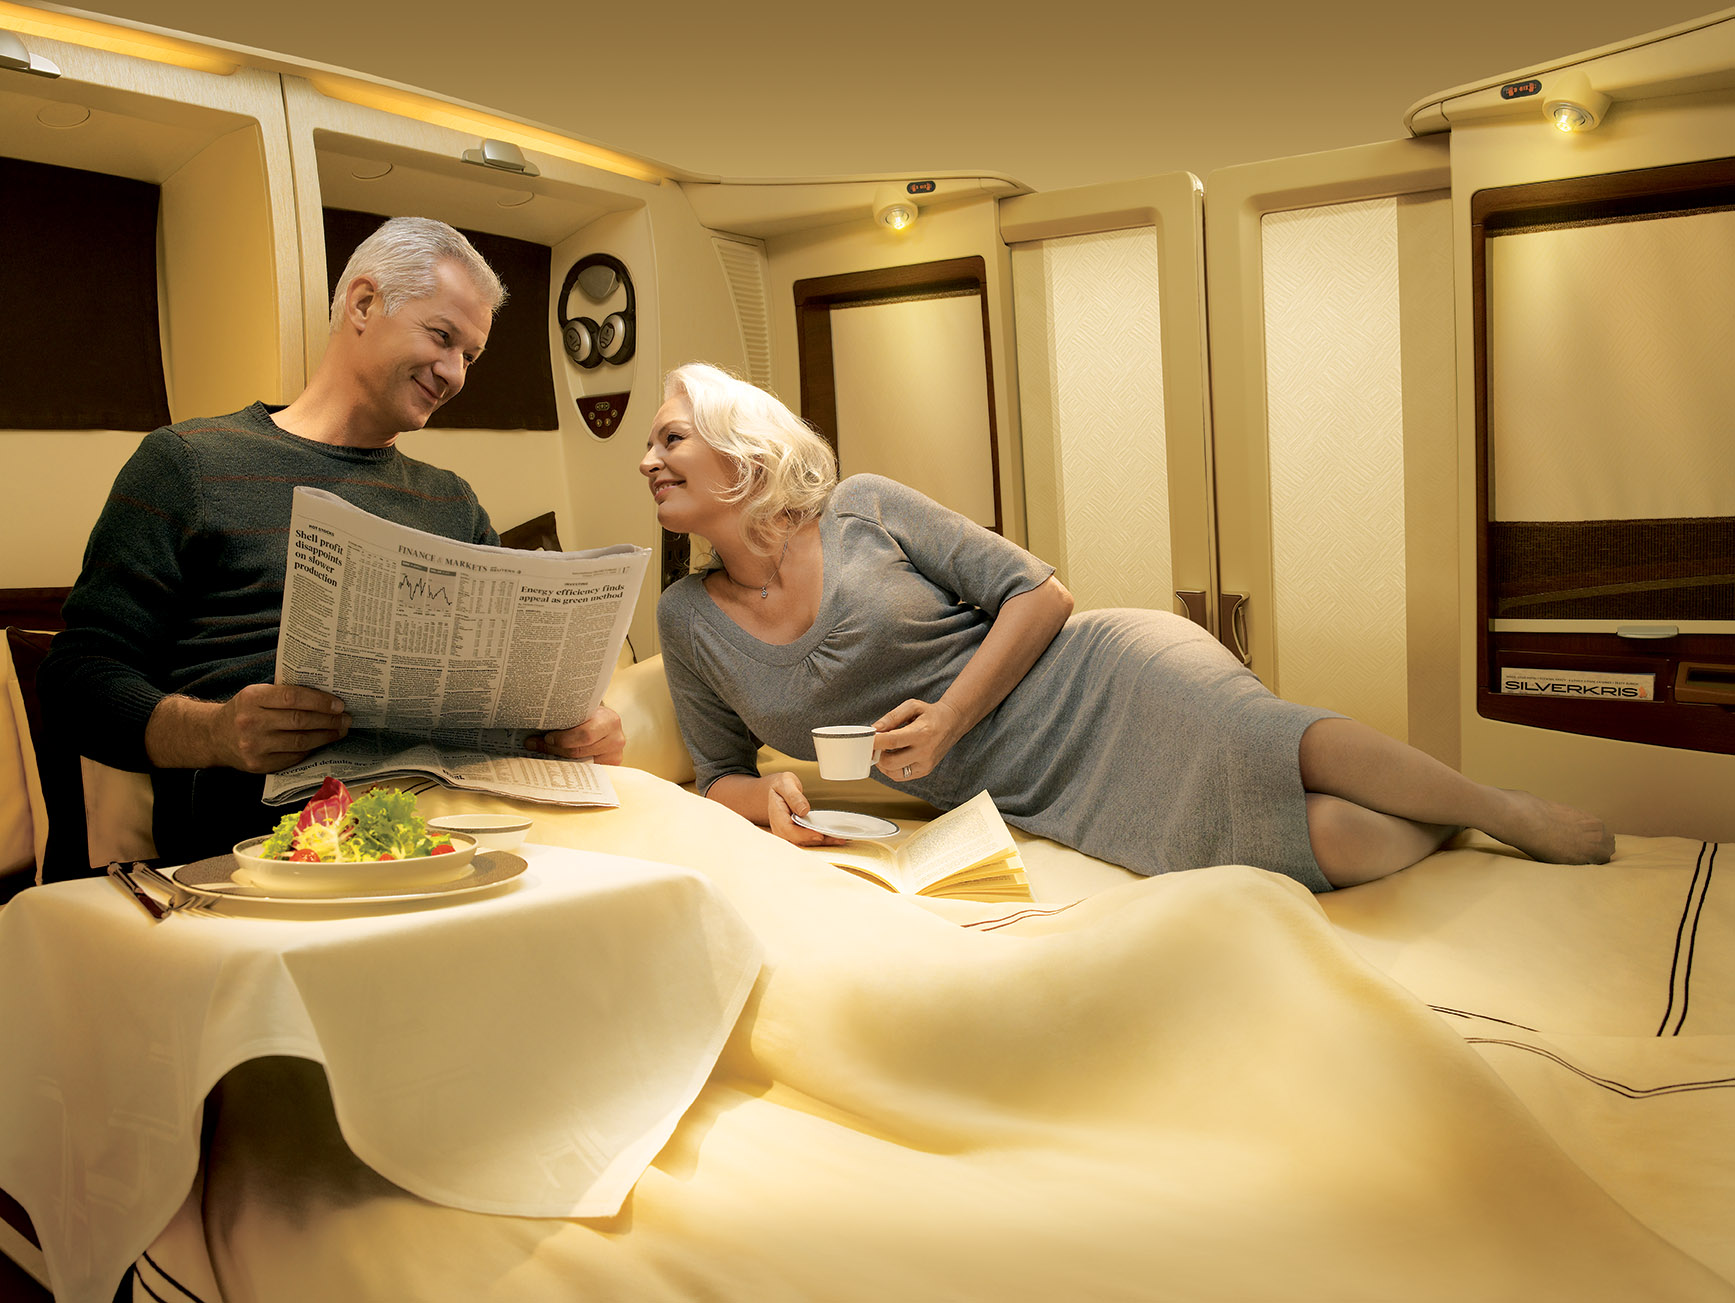 SingaporeAirlines FirstClassSuite2 PhotoCreditSingaporeAirlines Flying First Class